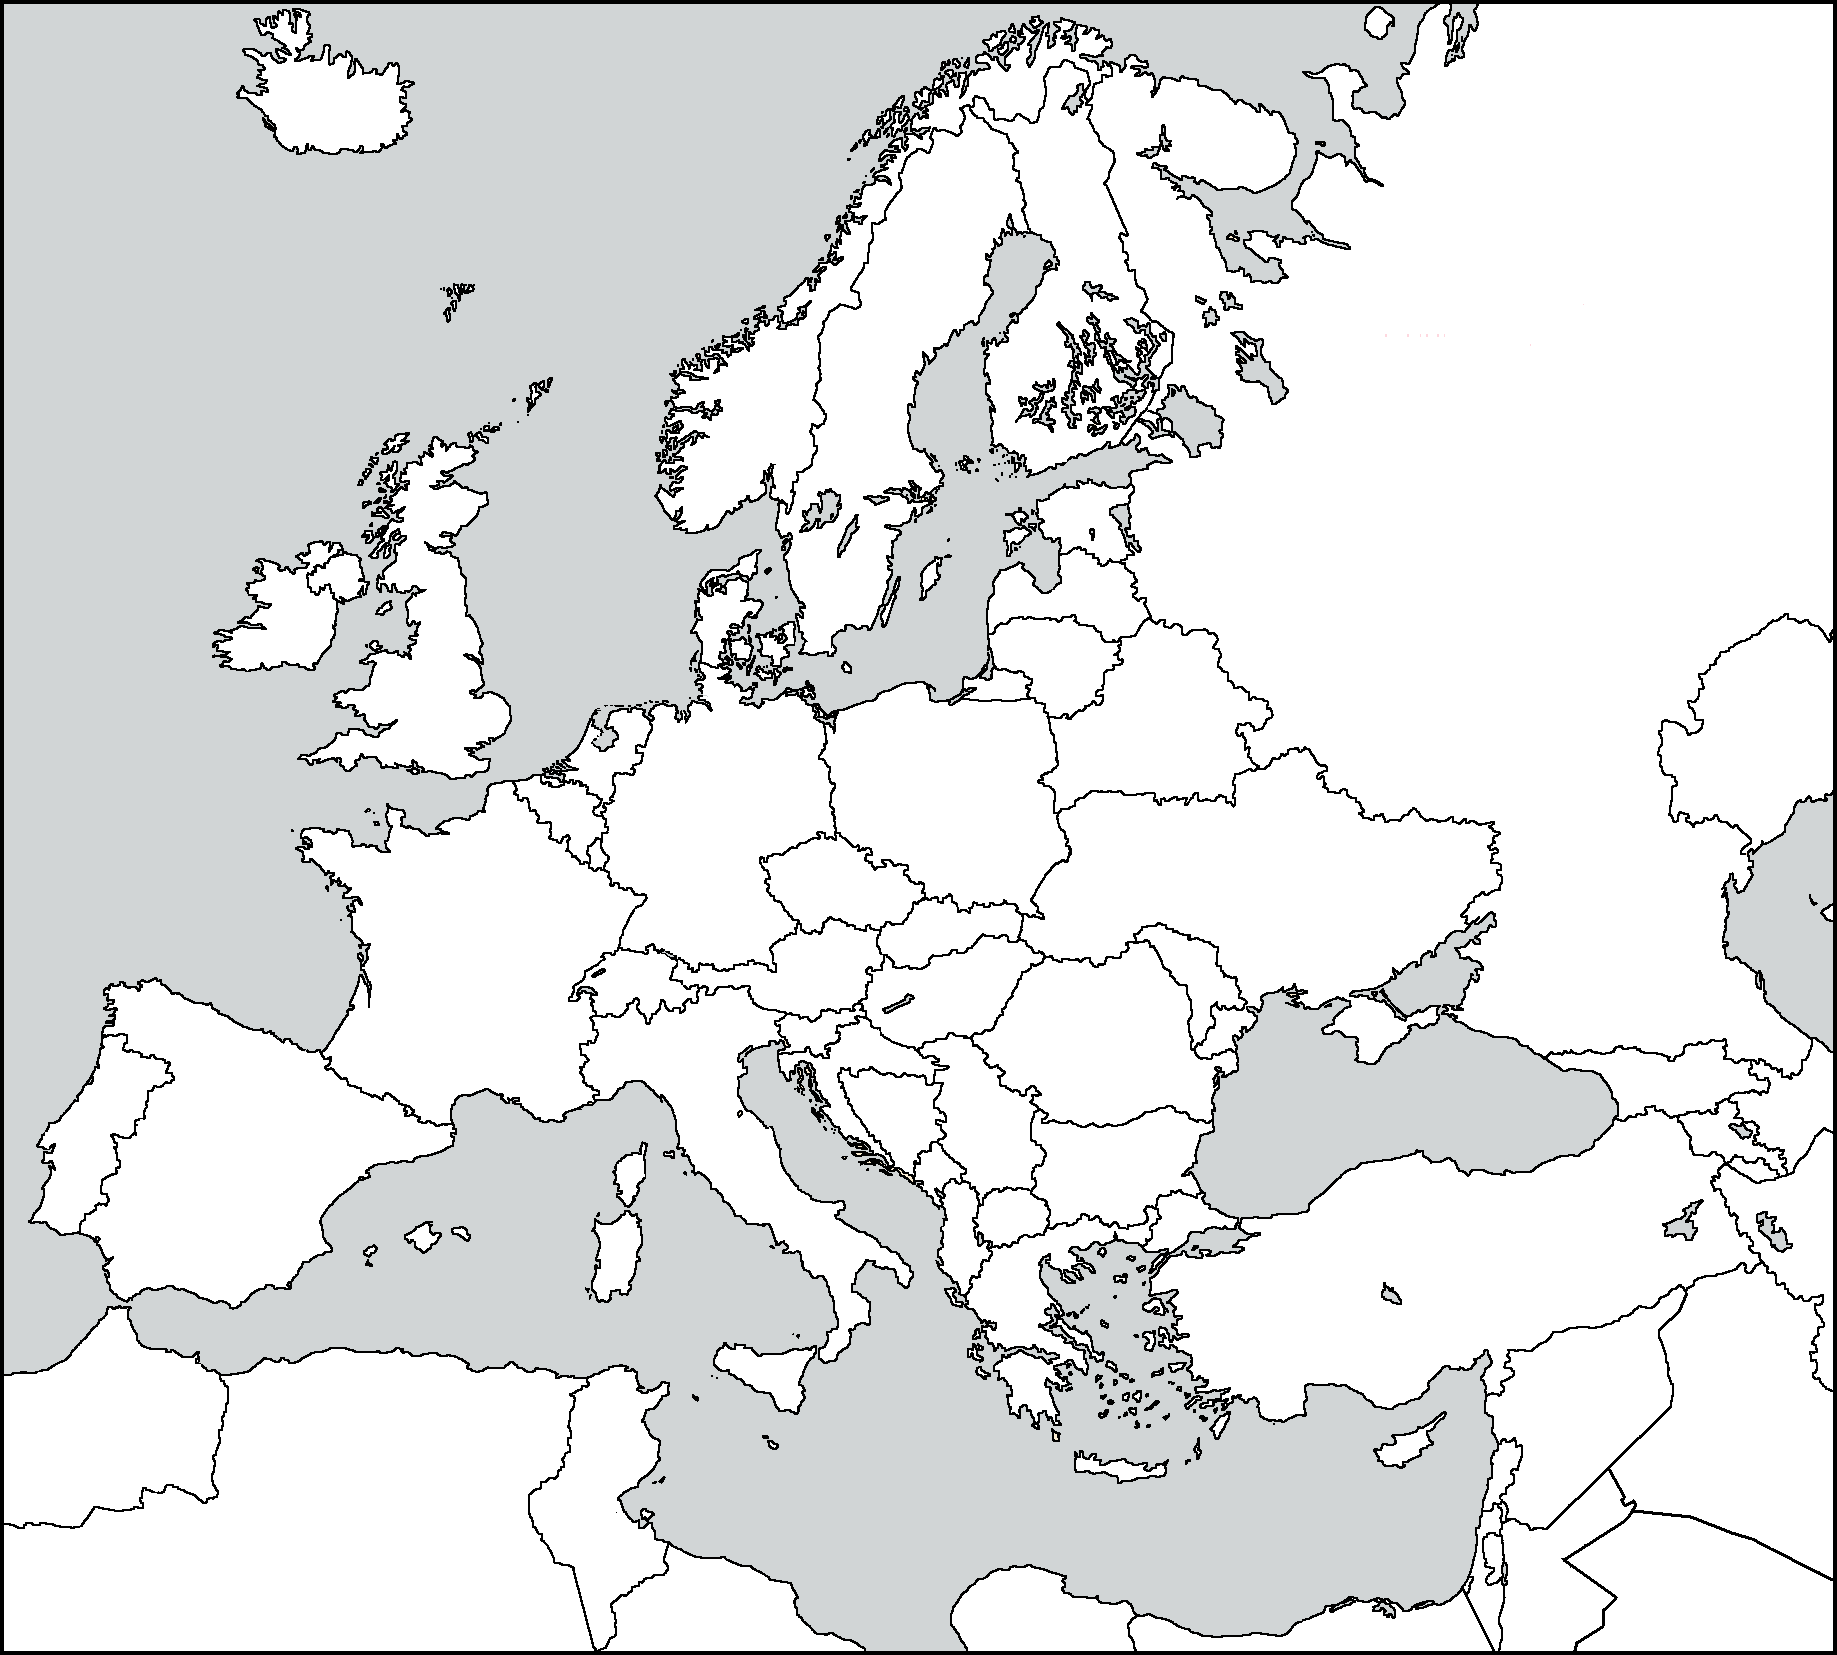 blank europe map without kosovo and liechtensteinpng